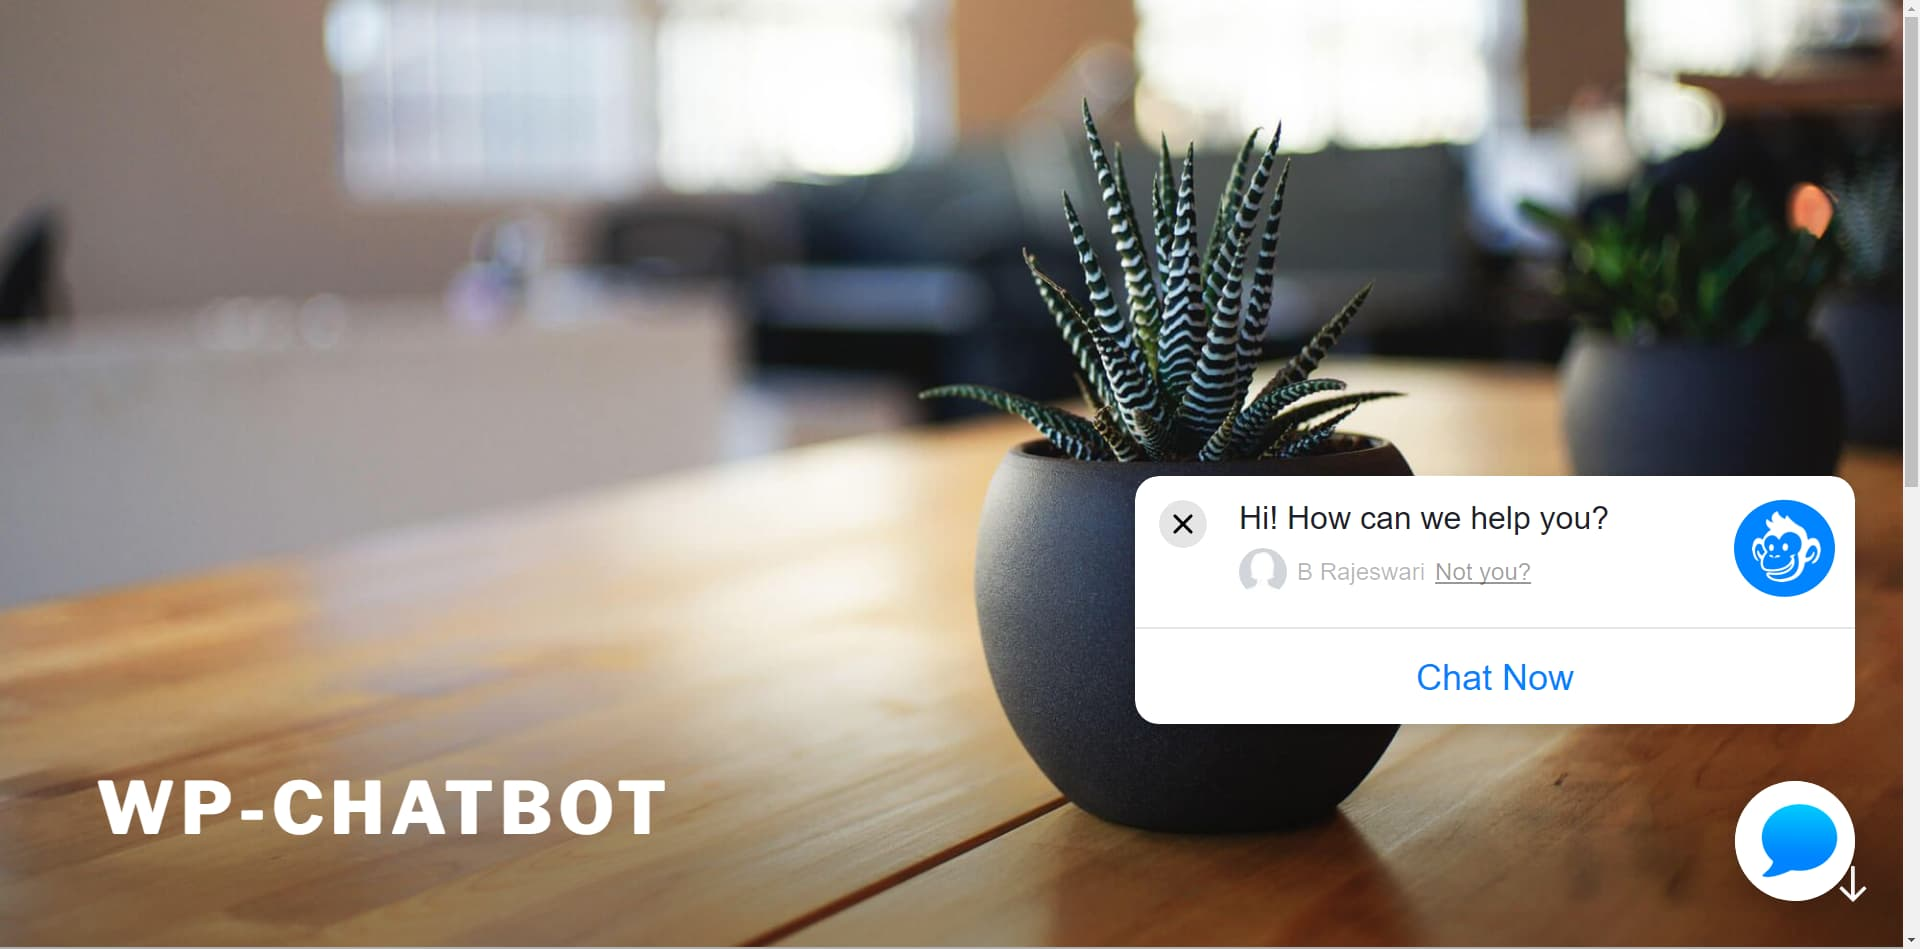 El plugin de WP-Chatbot